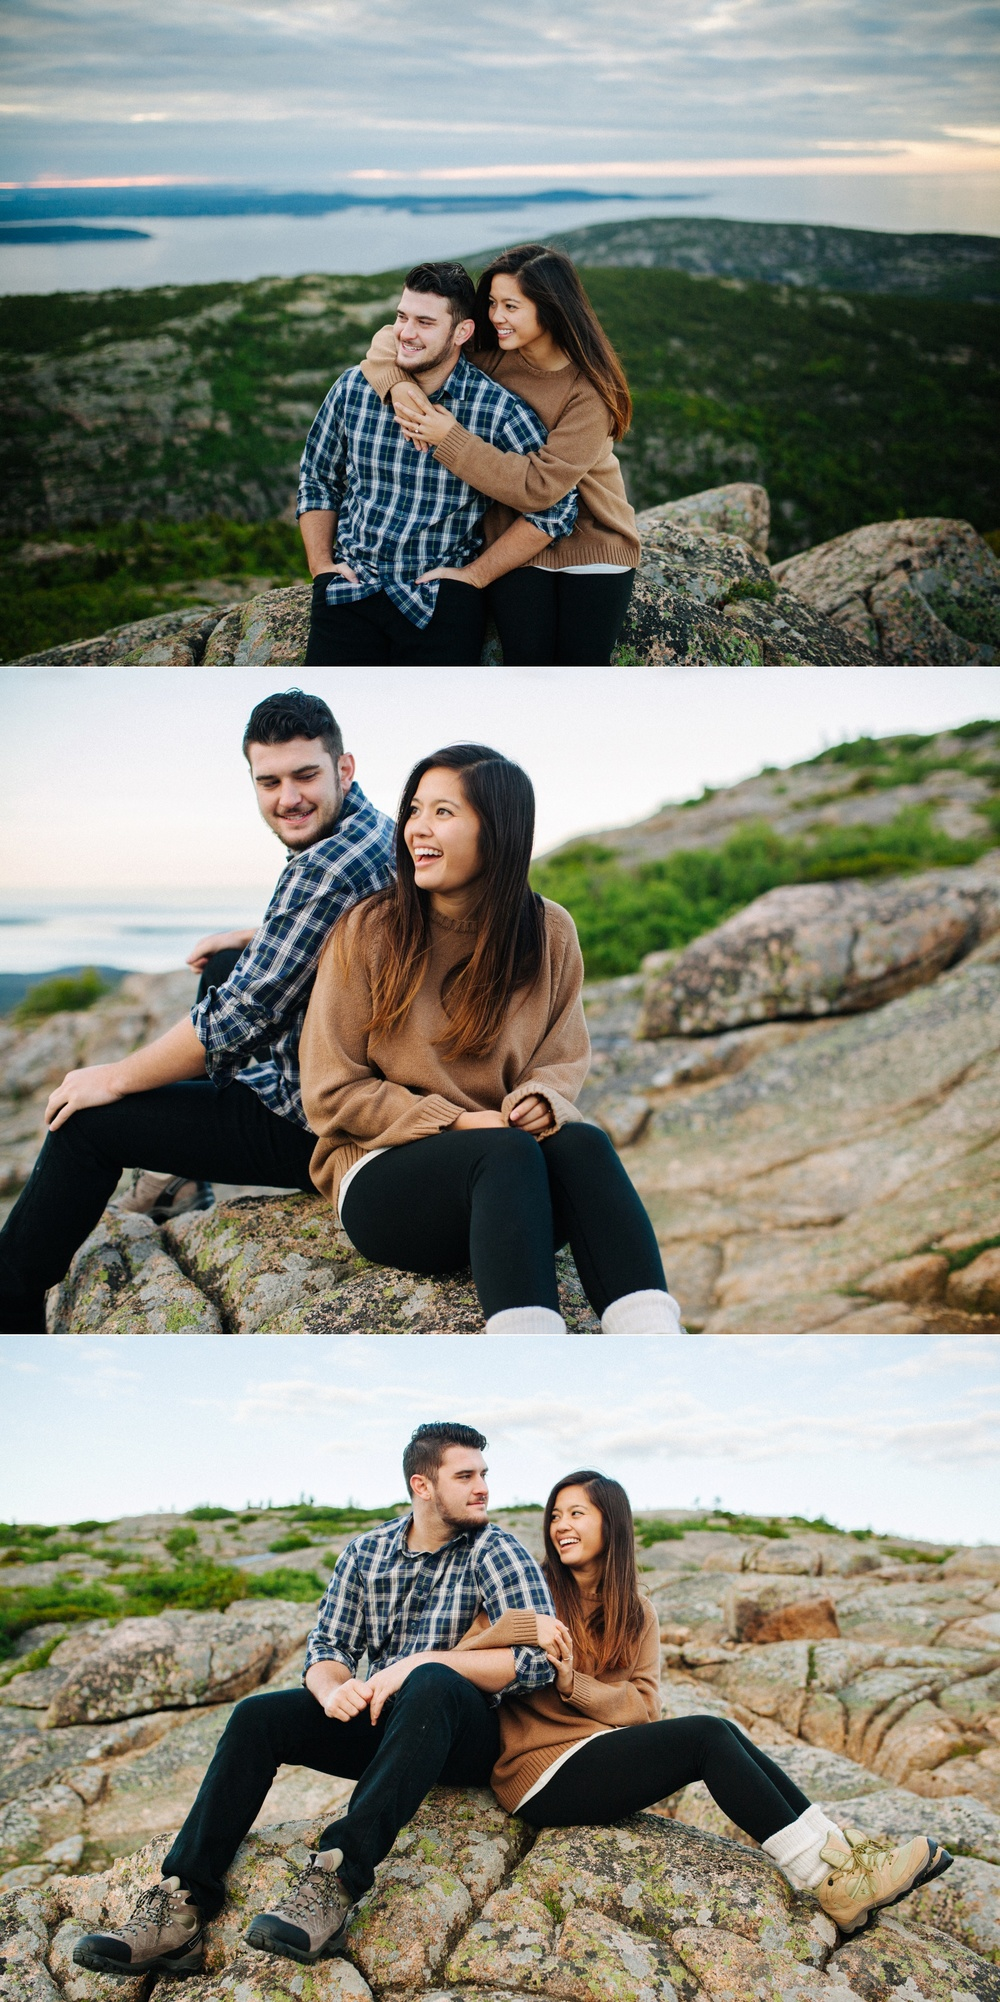 jake and jill acacdia national park engagement session cadillac mountain engagement session jordan pond engagement session maine engagement session jake and katie_0016